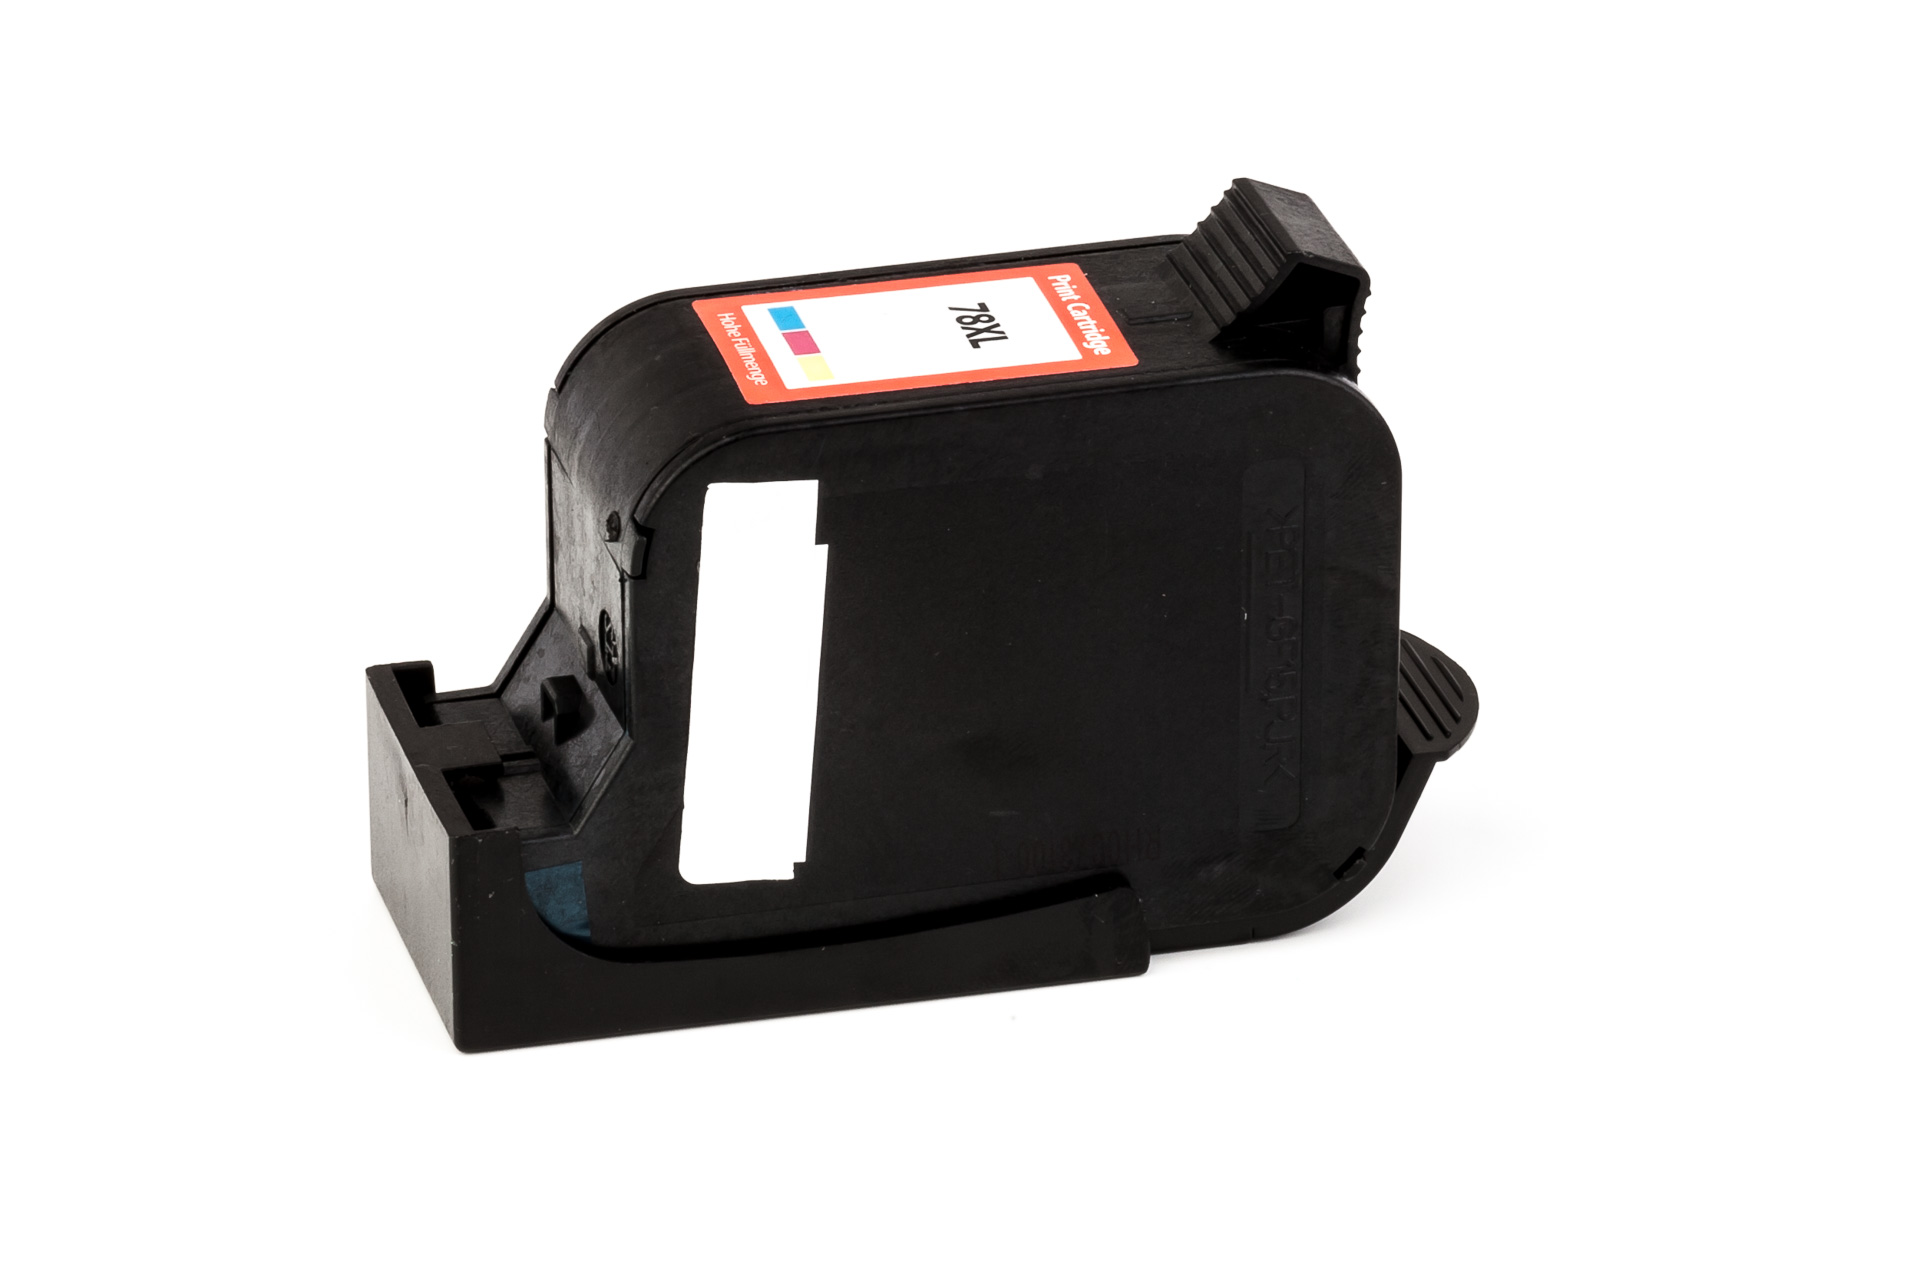 ASC-Premium-Druckkopf für LSK Optical Disk Printer 100 color Optical Disk Printer 100 OpticalDiskPrinter100